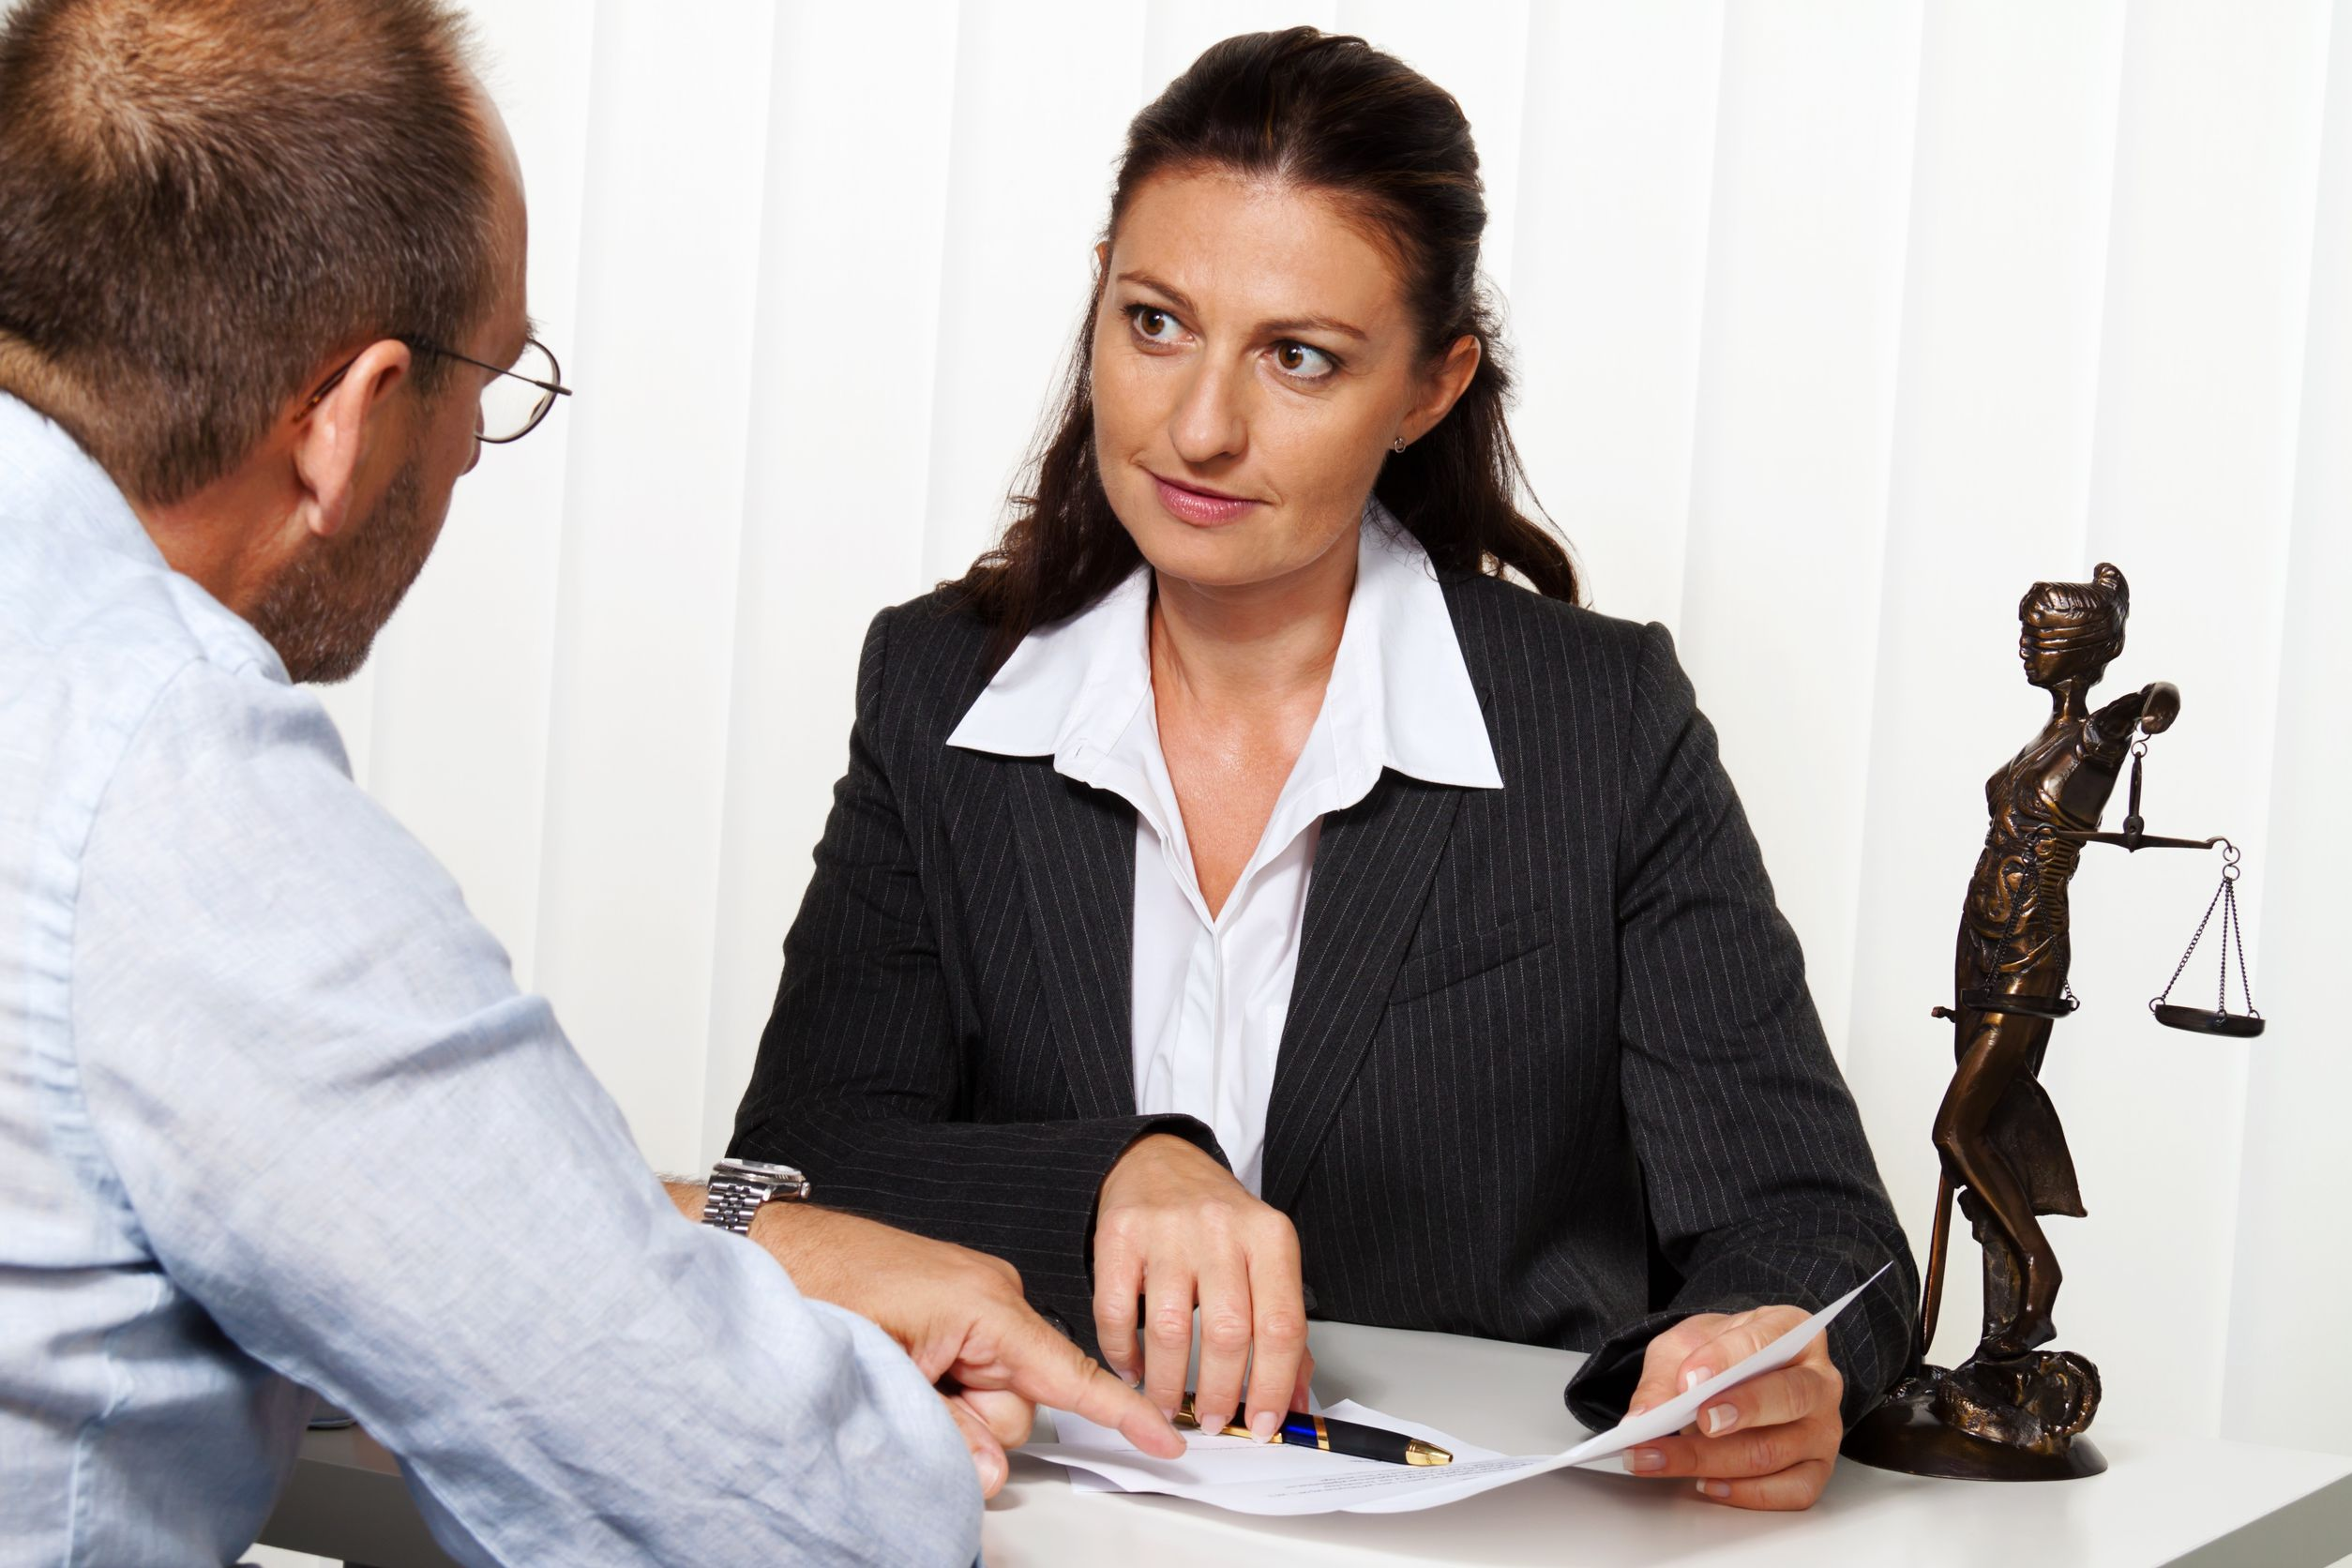 Professional Legal Assistance When You Need It Most